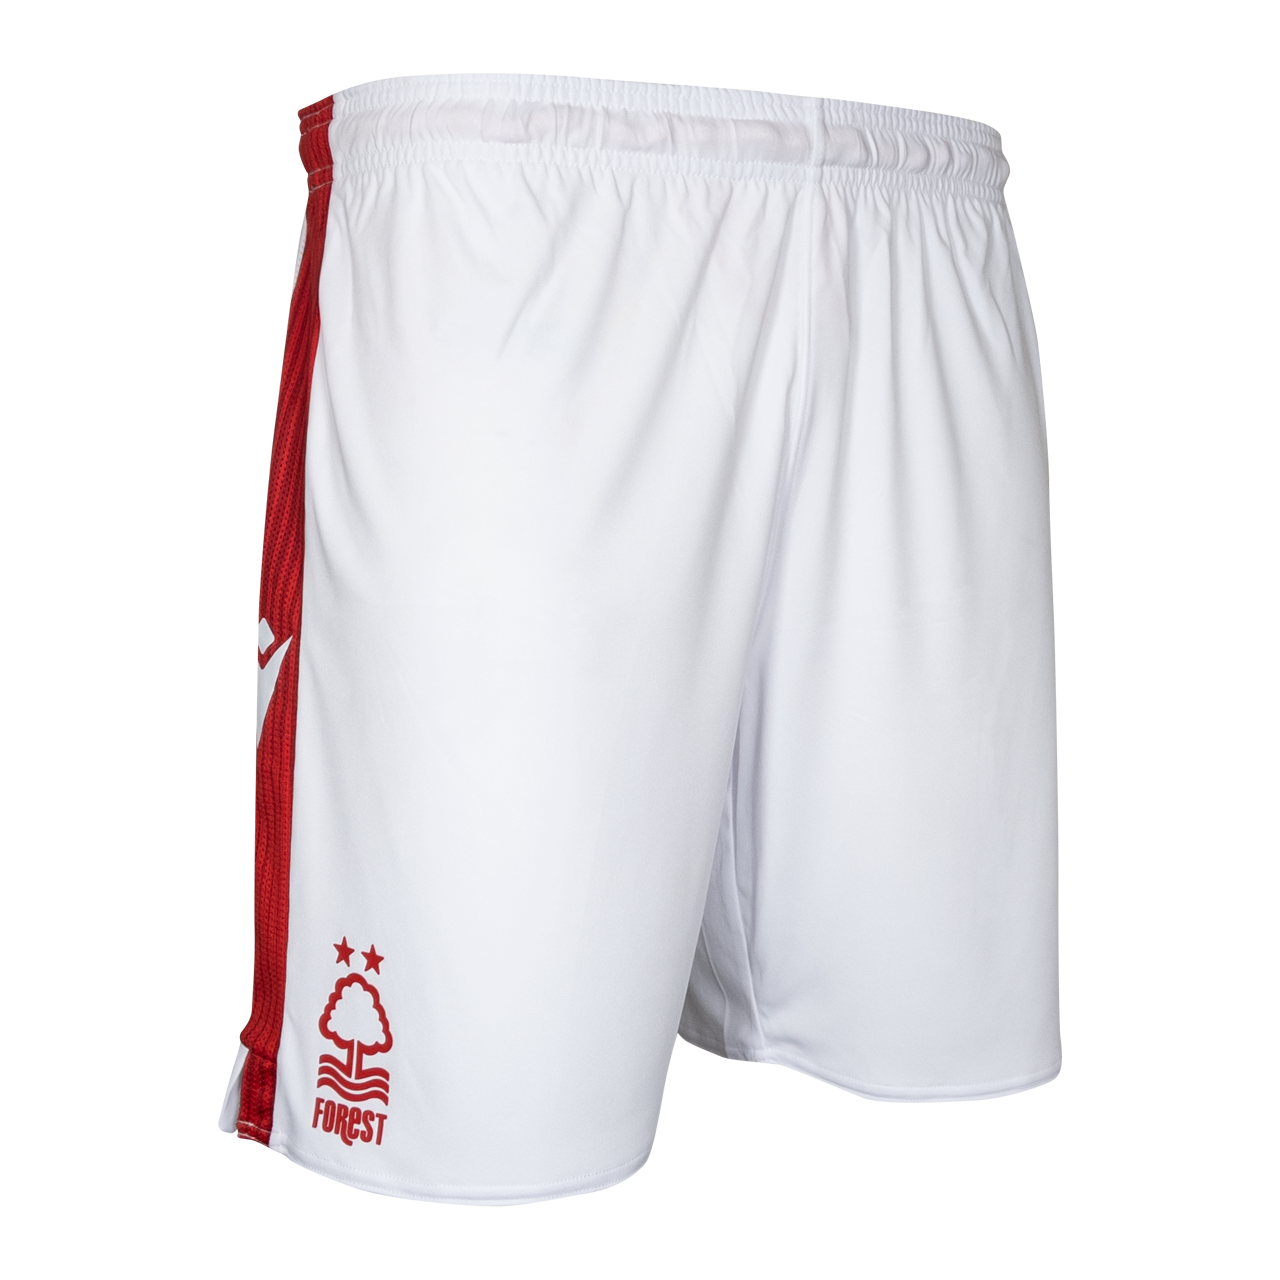 NFFC Junior Home Shorts 2019/20